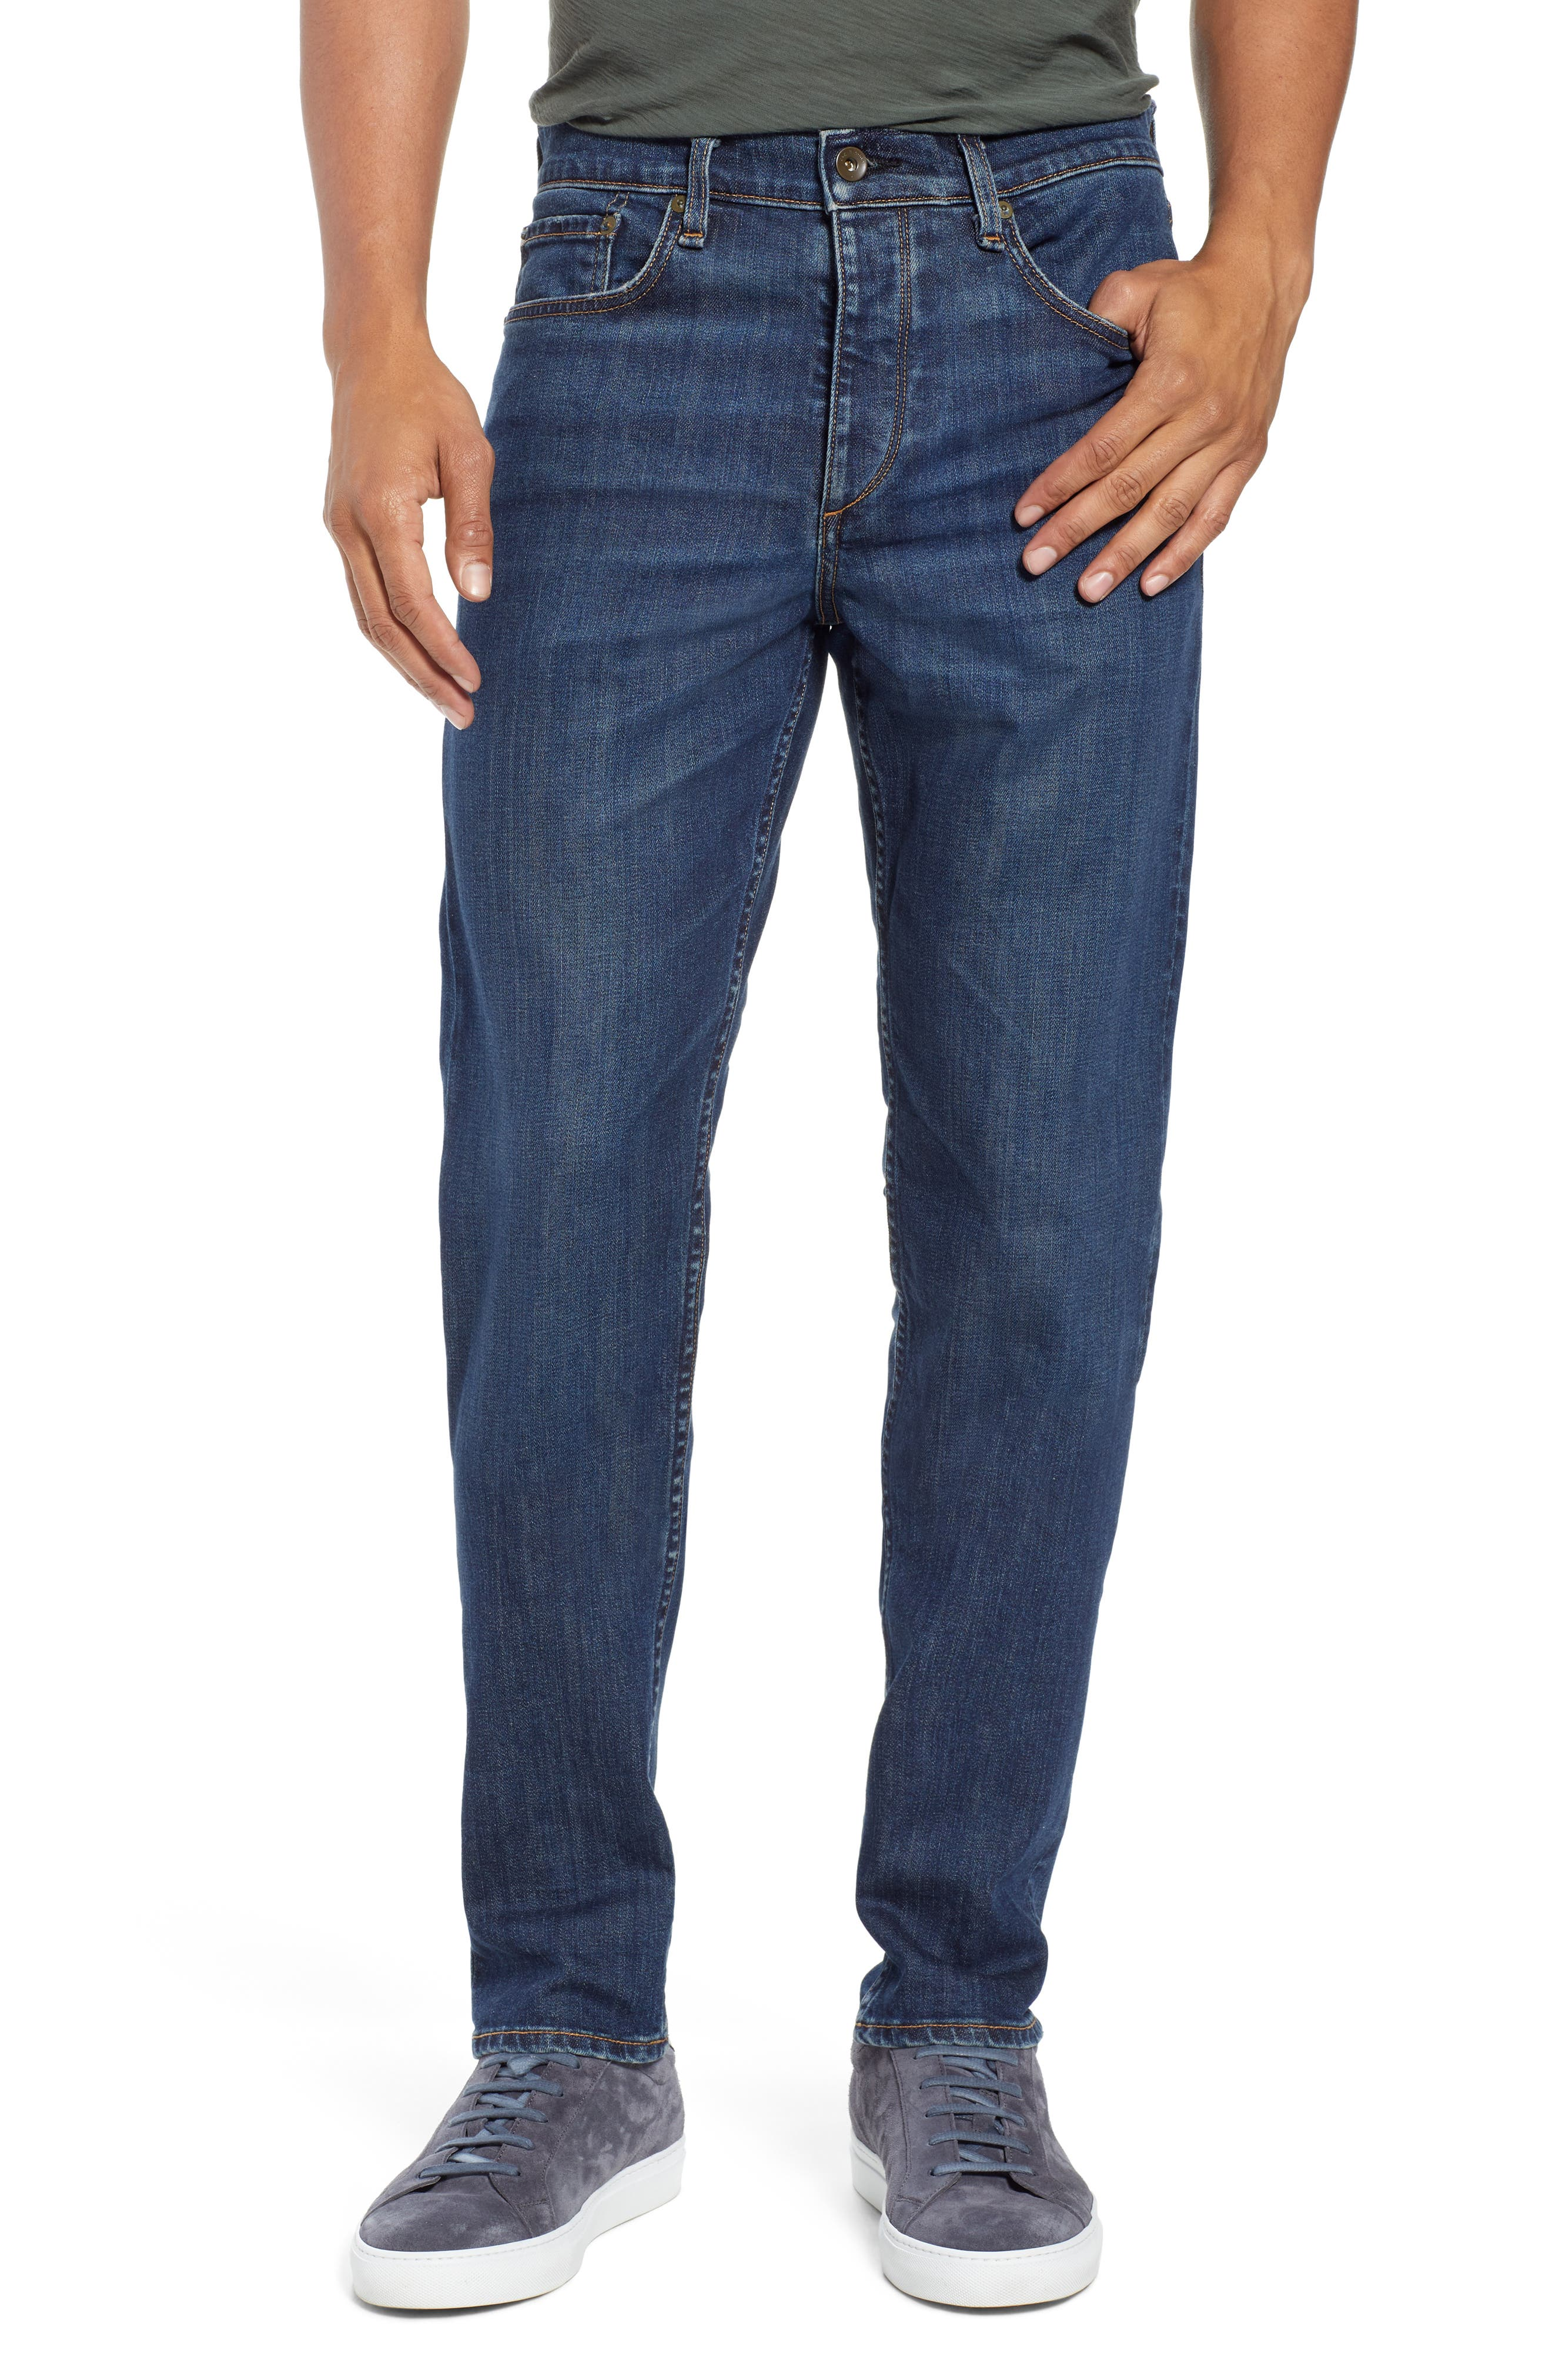 Fit 2 Slim Fit Jeans,                         Main,                         color, 420